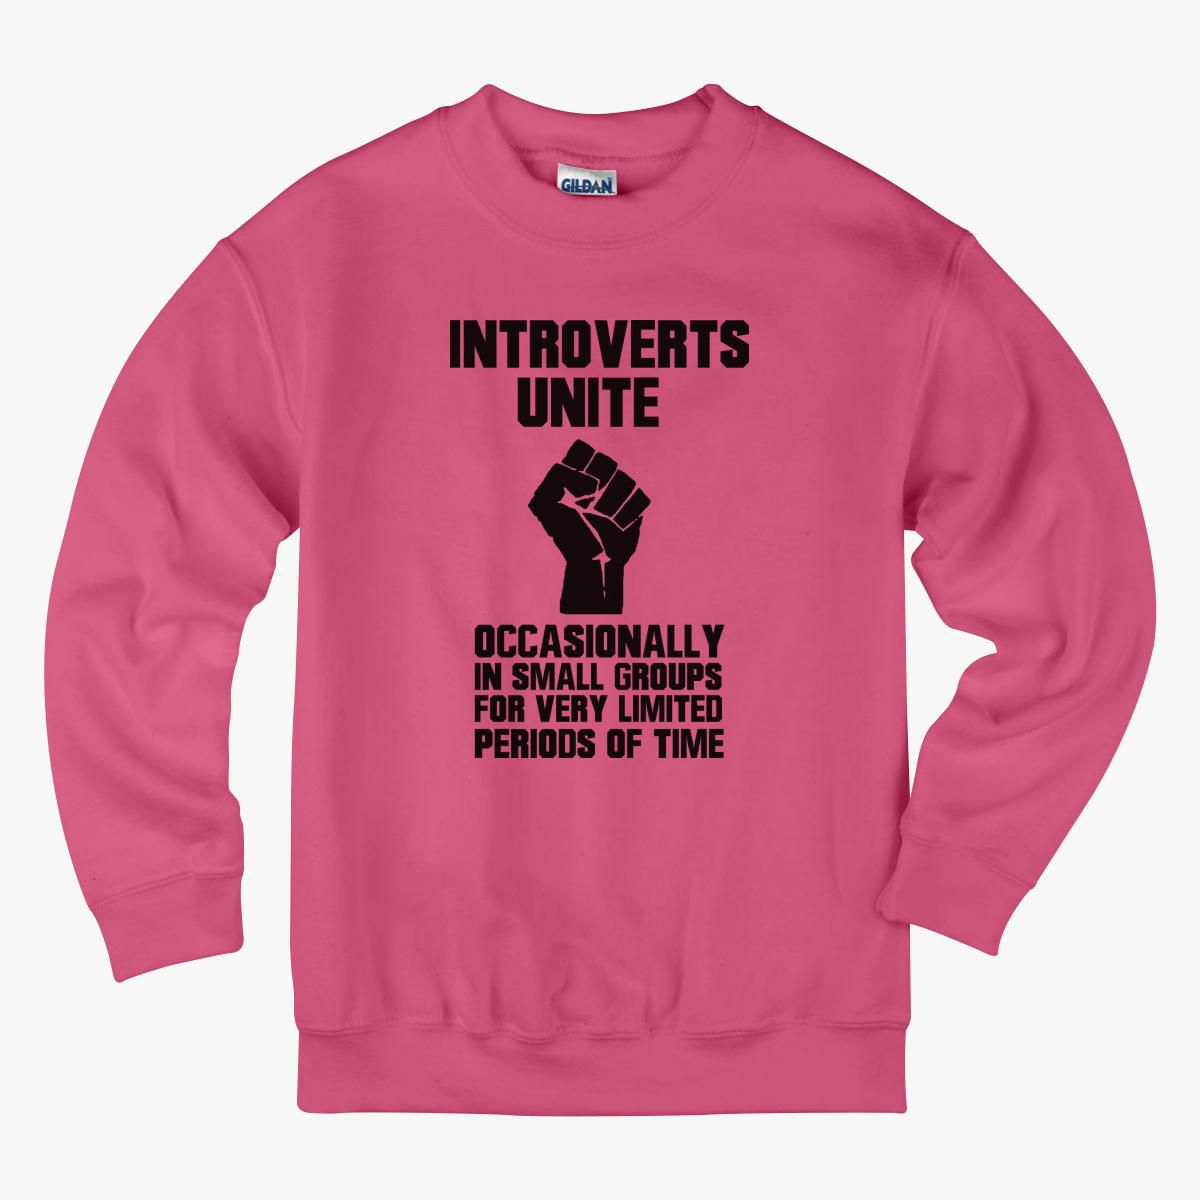 Introverts unite occasionally in small groups for very ...